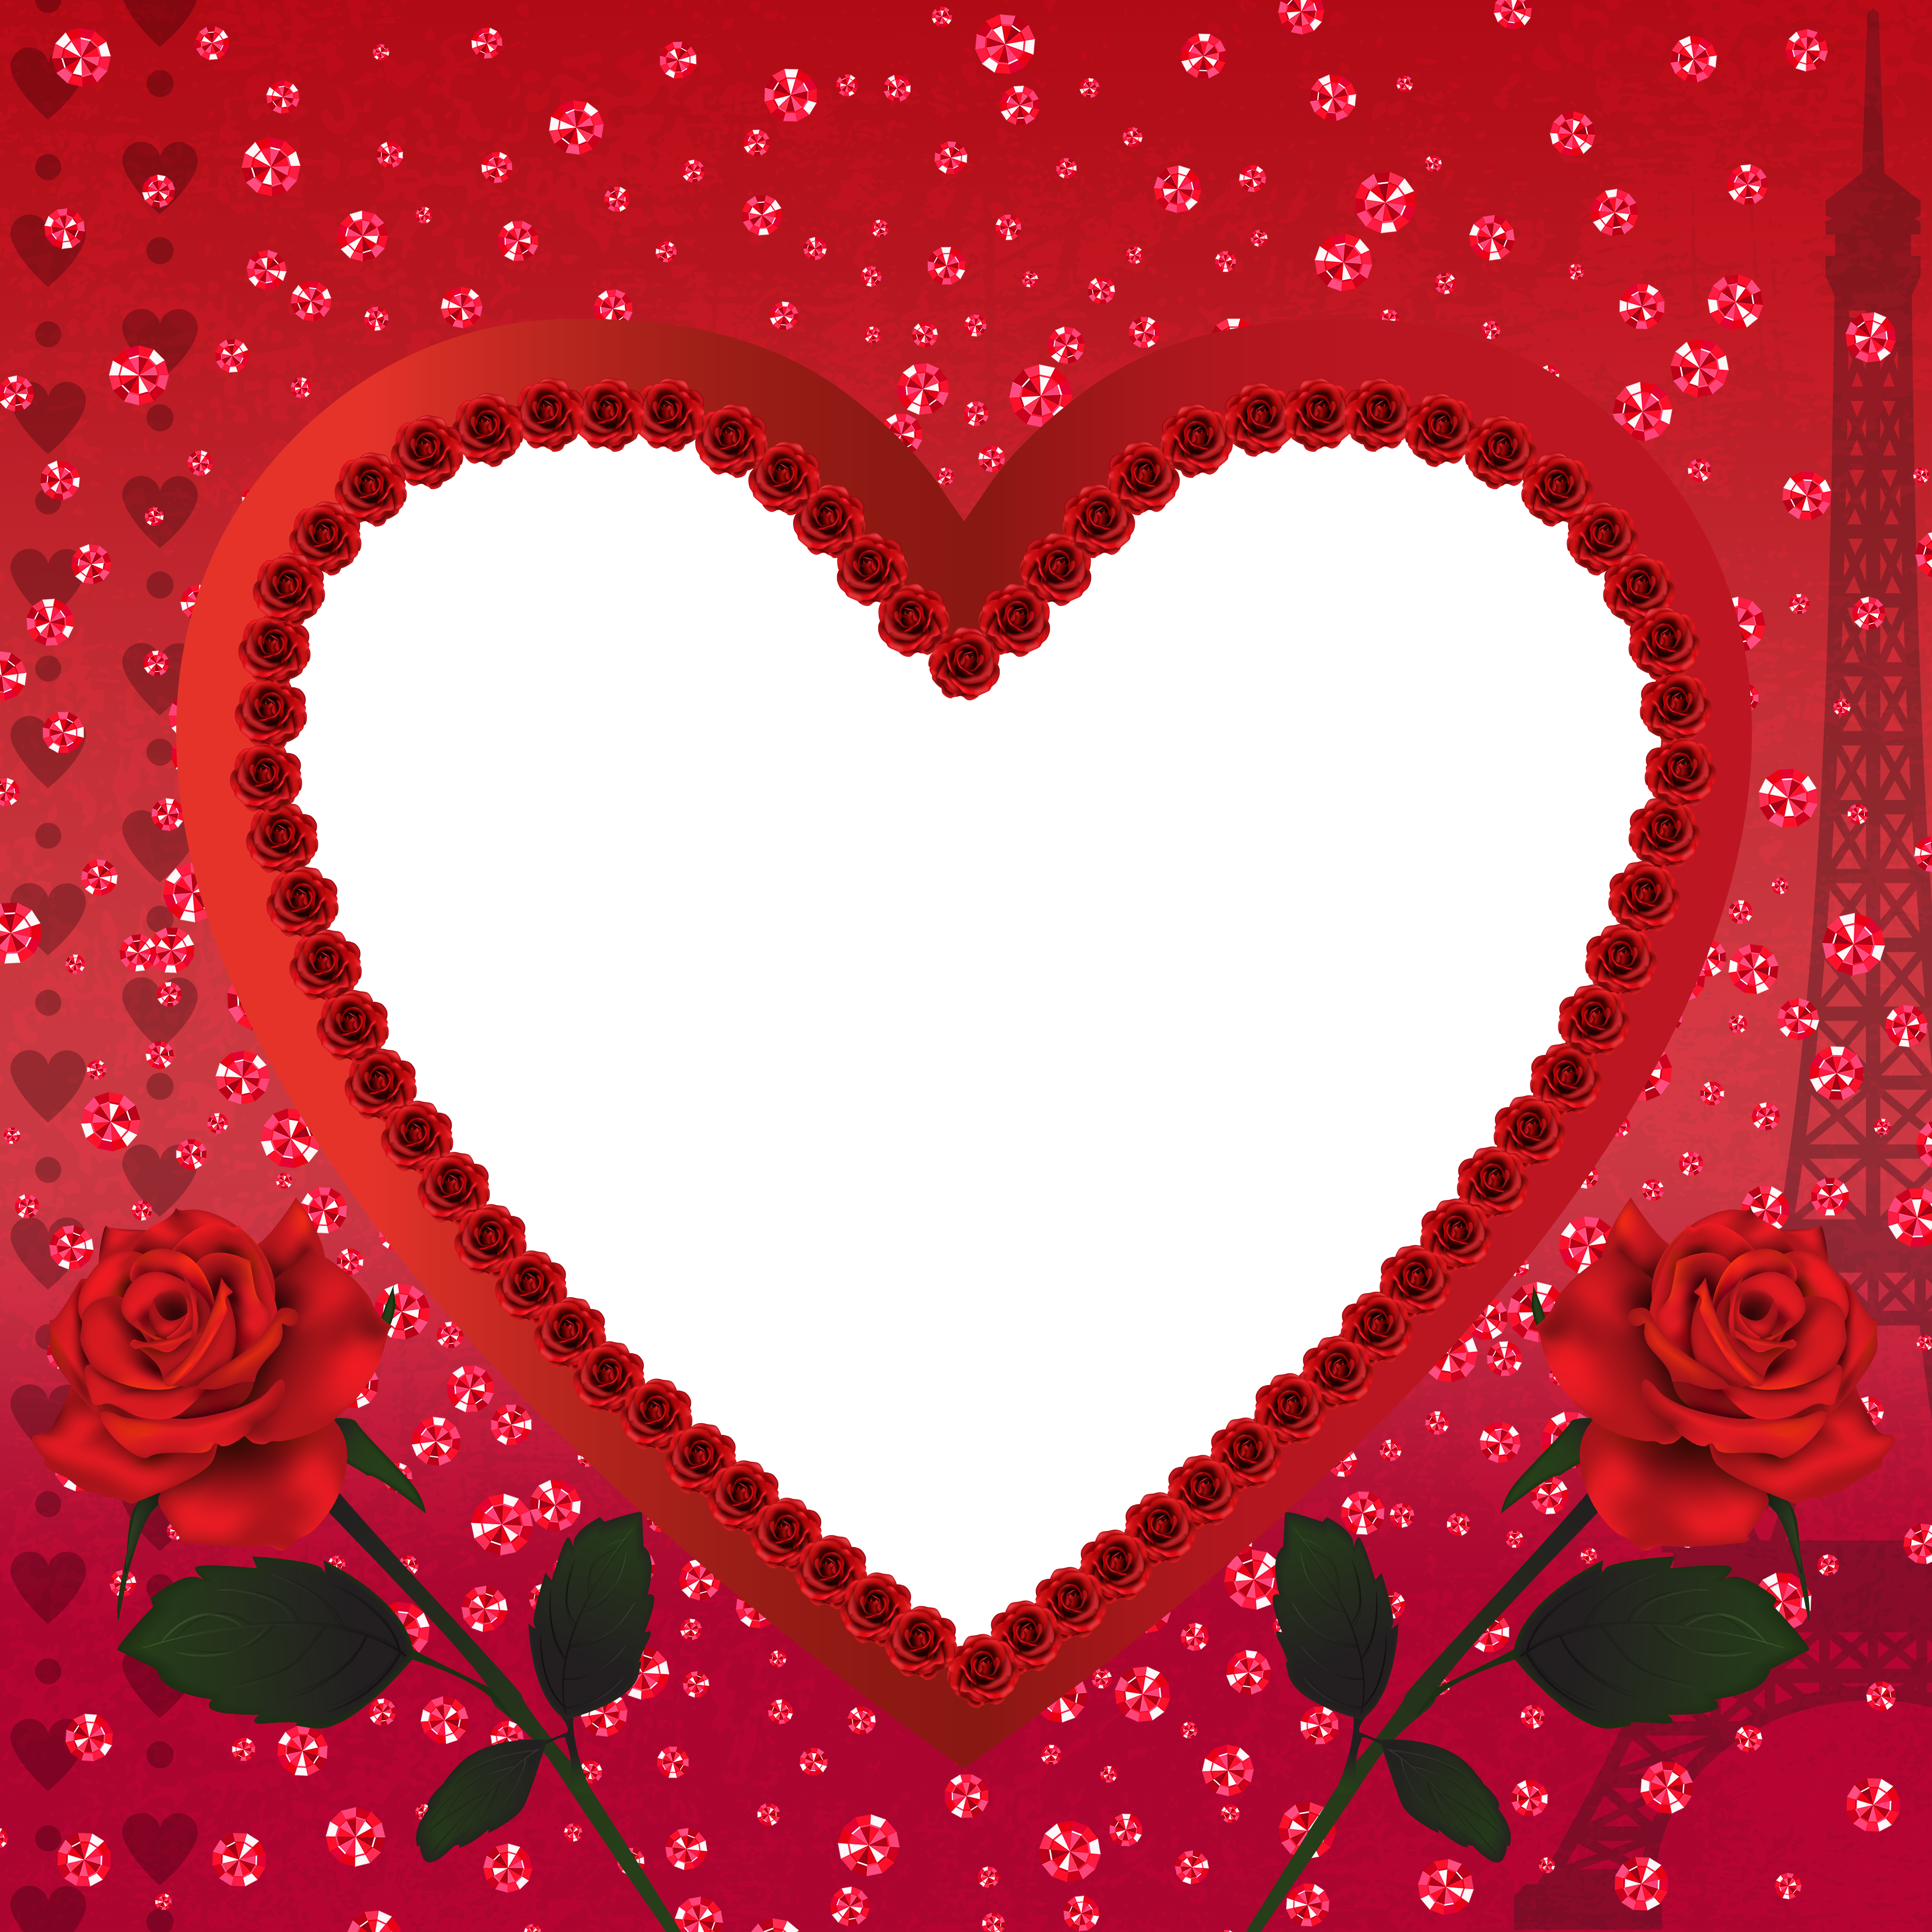 Heart Romantic Love In Paris Png Transparent Frame Gallery Yopriceville High Quality Images And Transparent Png Fre Flower Frame Valentine Crafts Love Png